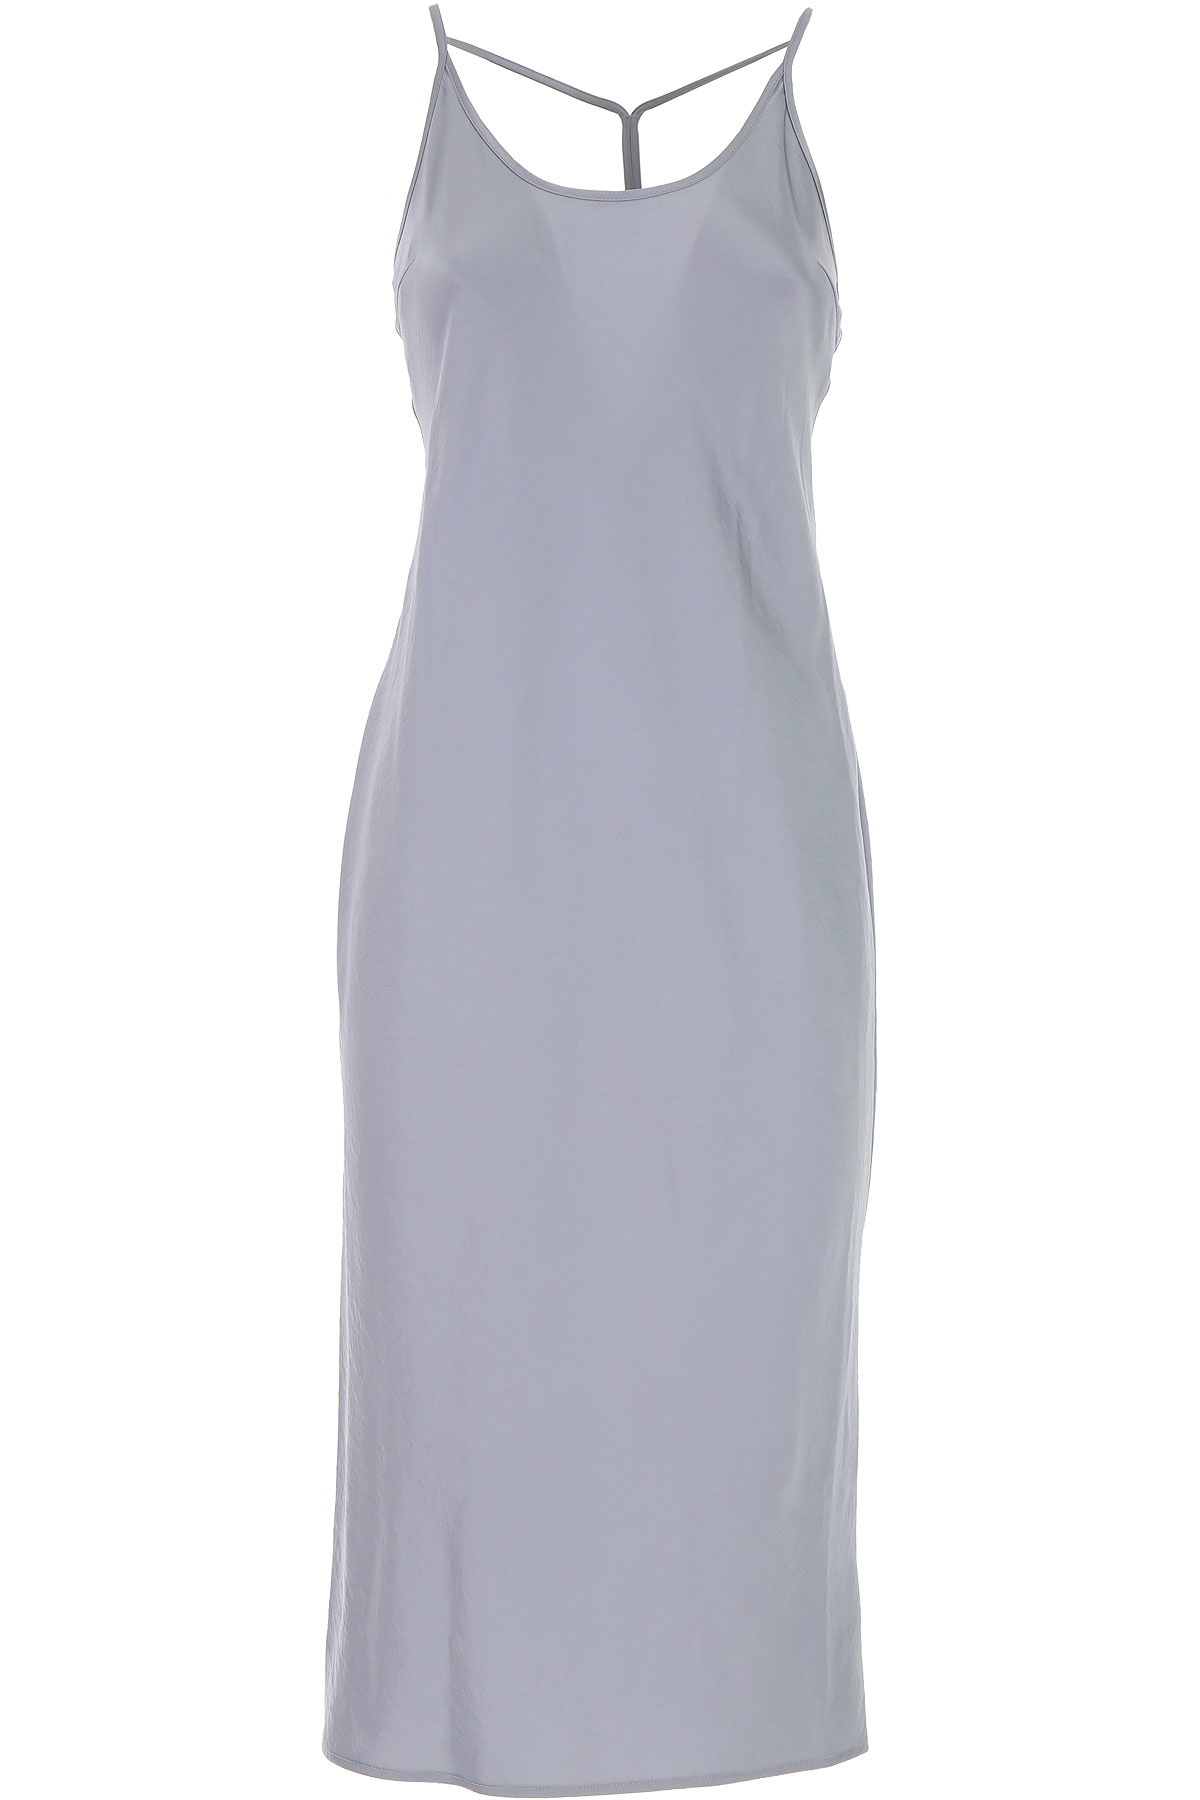 Alexander Wang Dress for Women, Evening Cocktail Party On Sale in Outlet, Bluette, Triacetate, 2019, USA 2 - IT 38